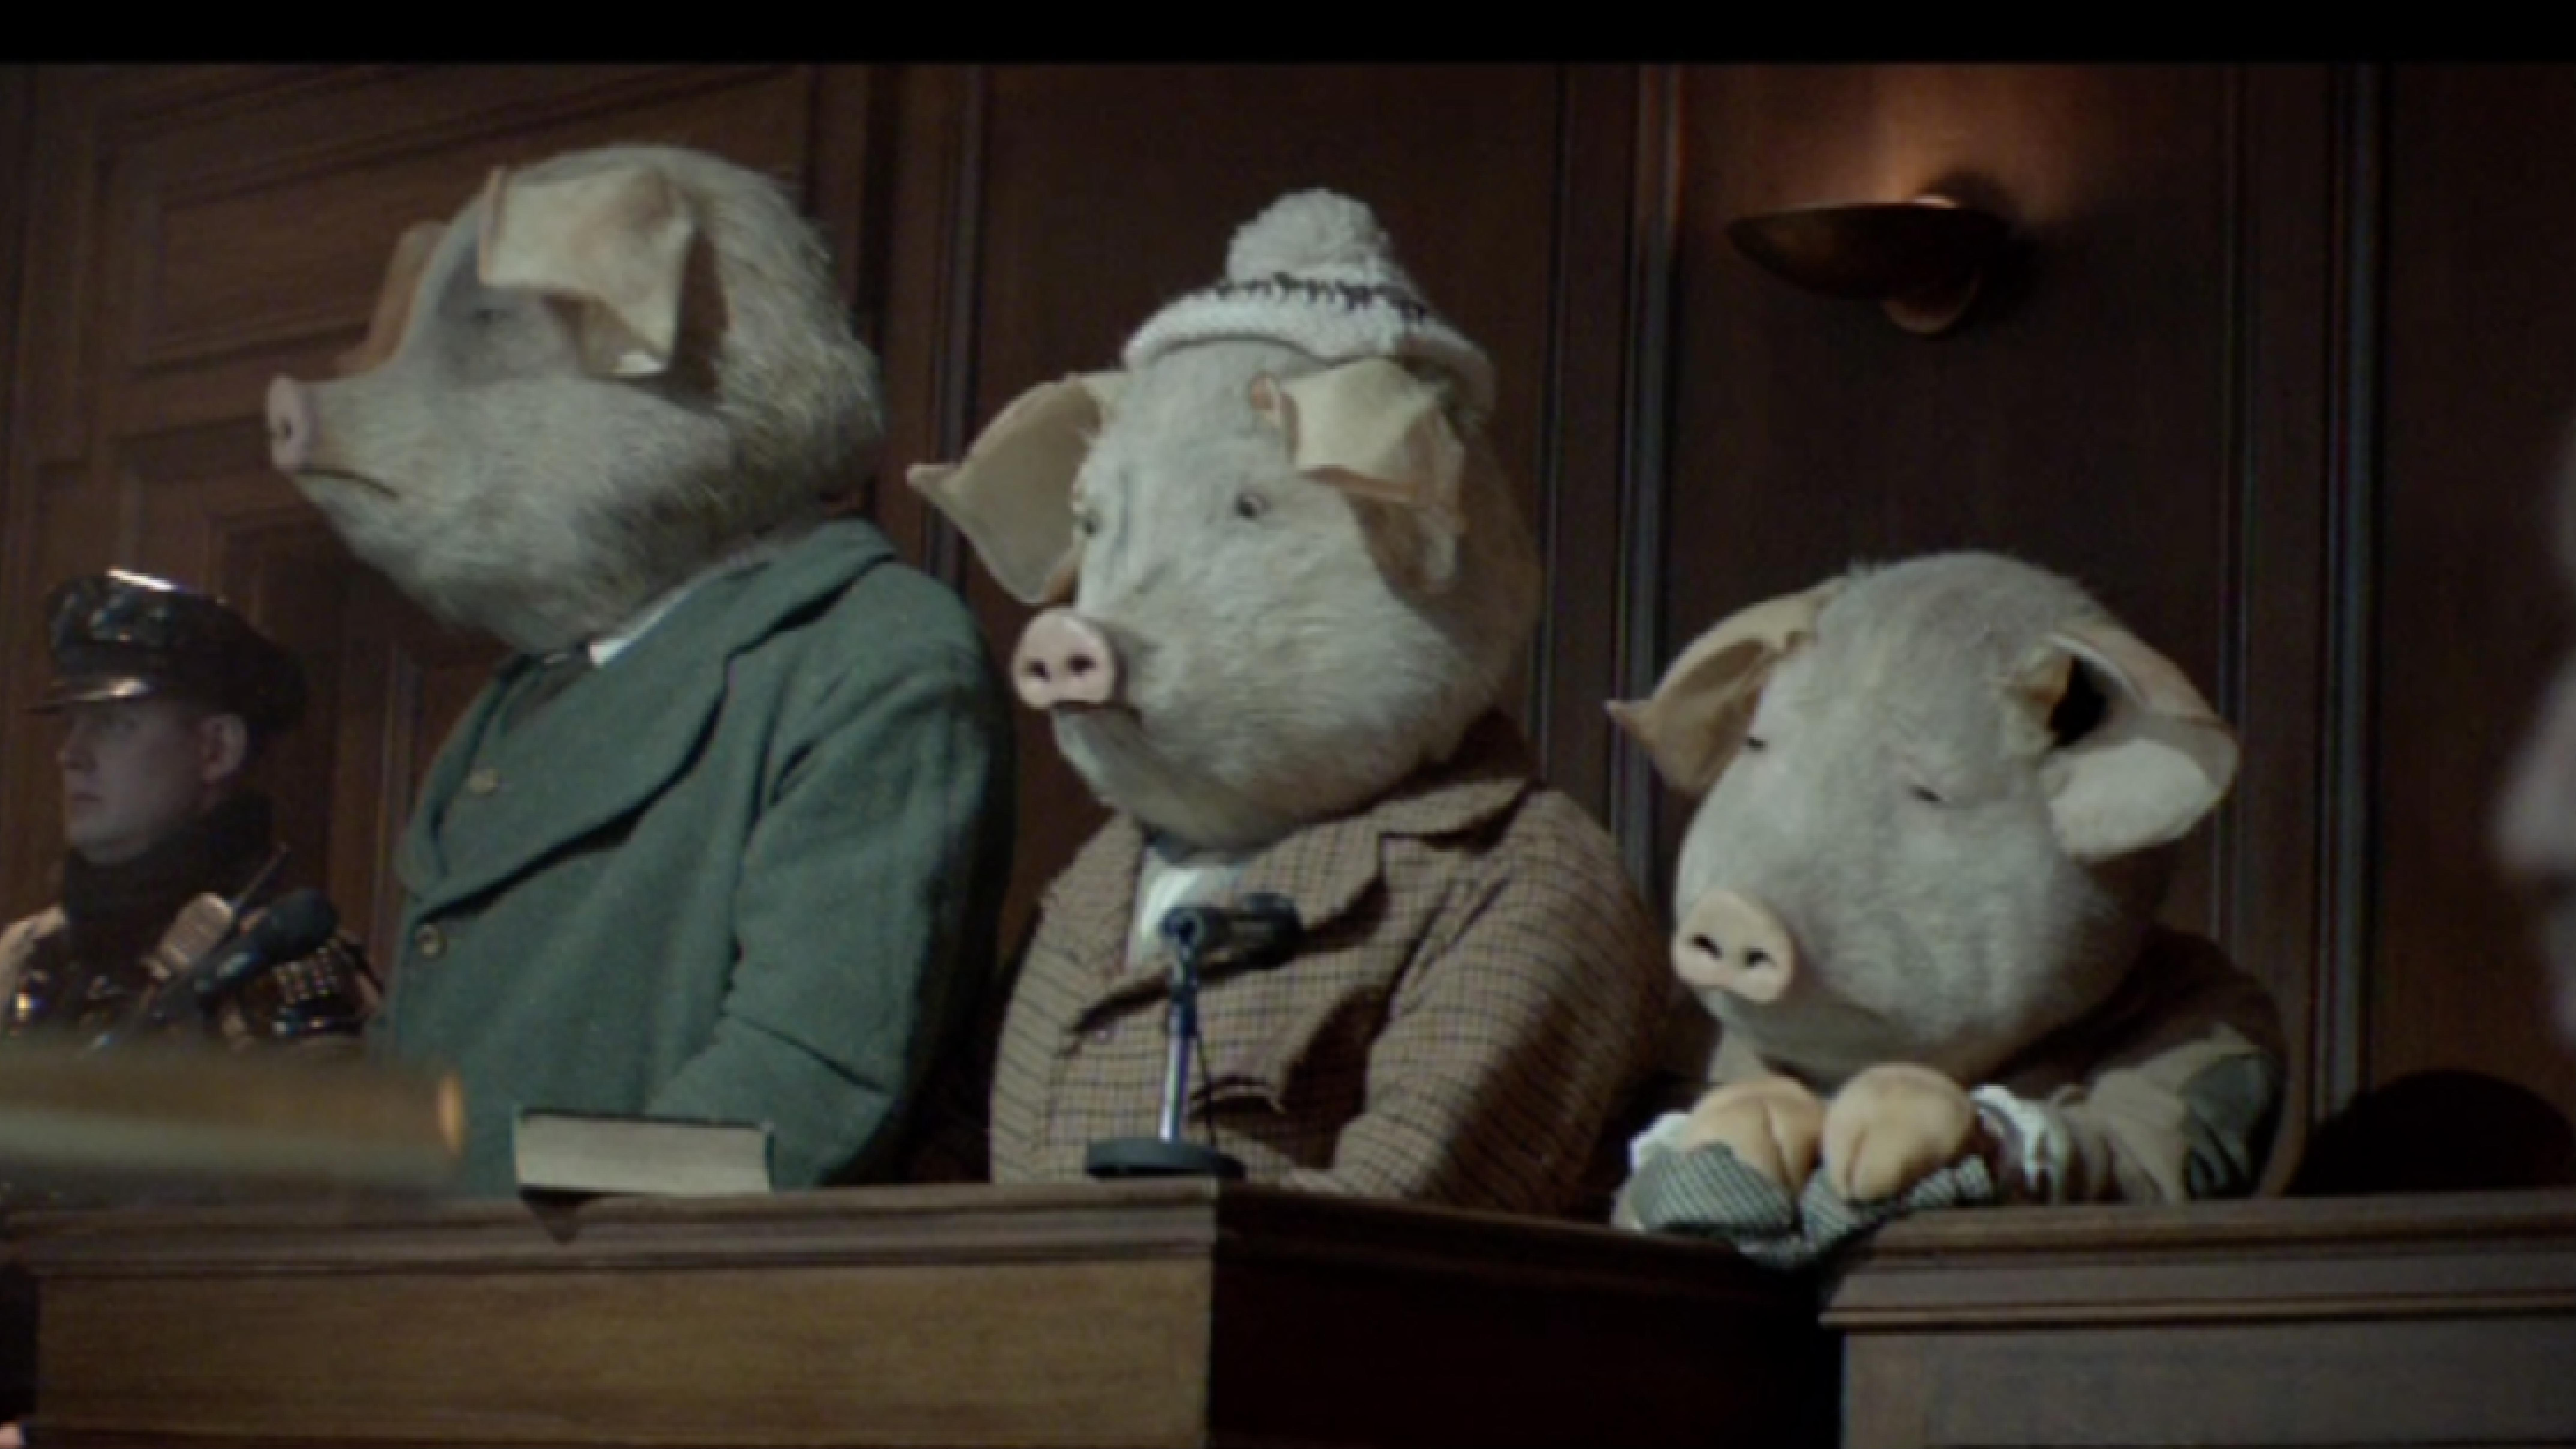 The Guardian: Three Little Pigs